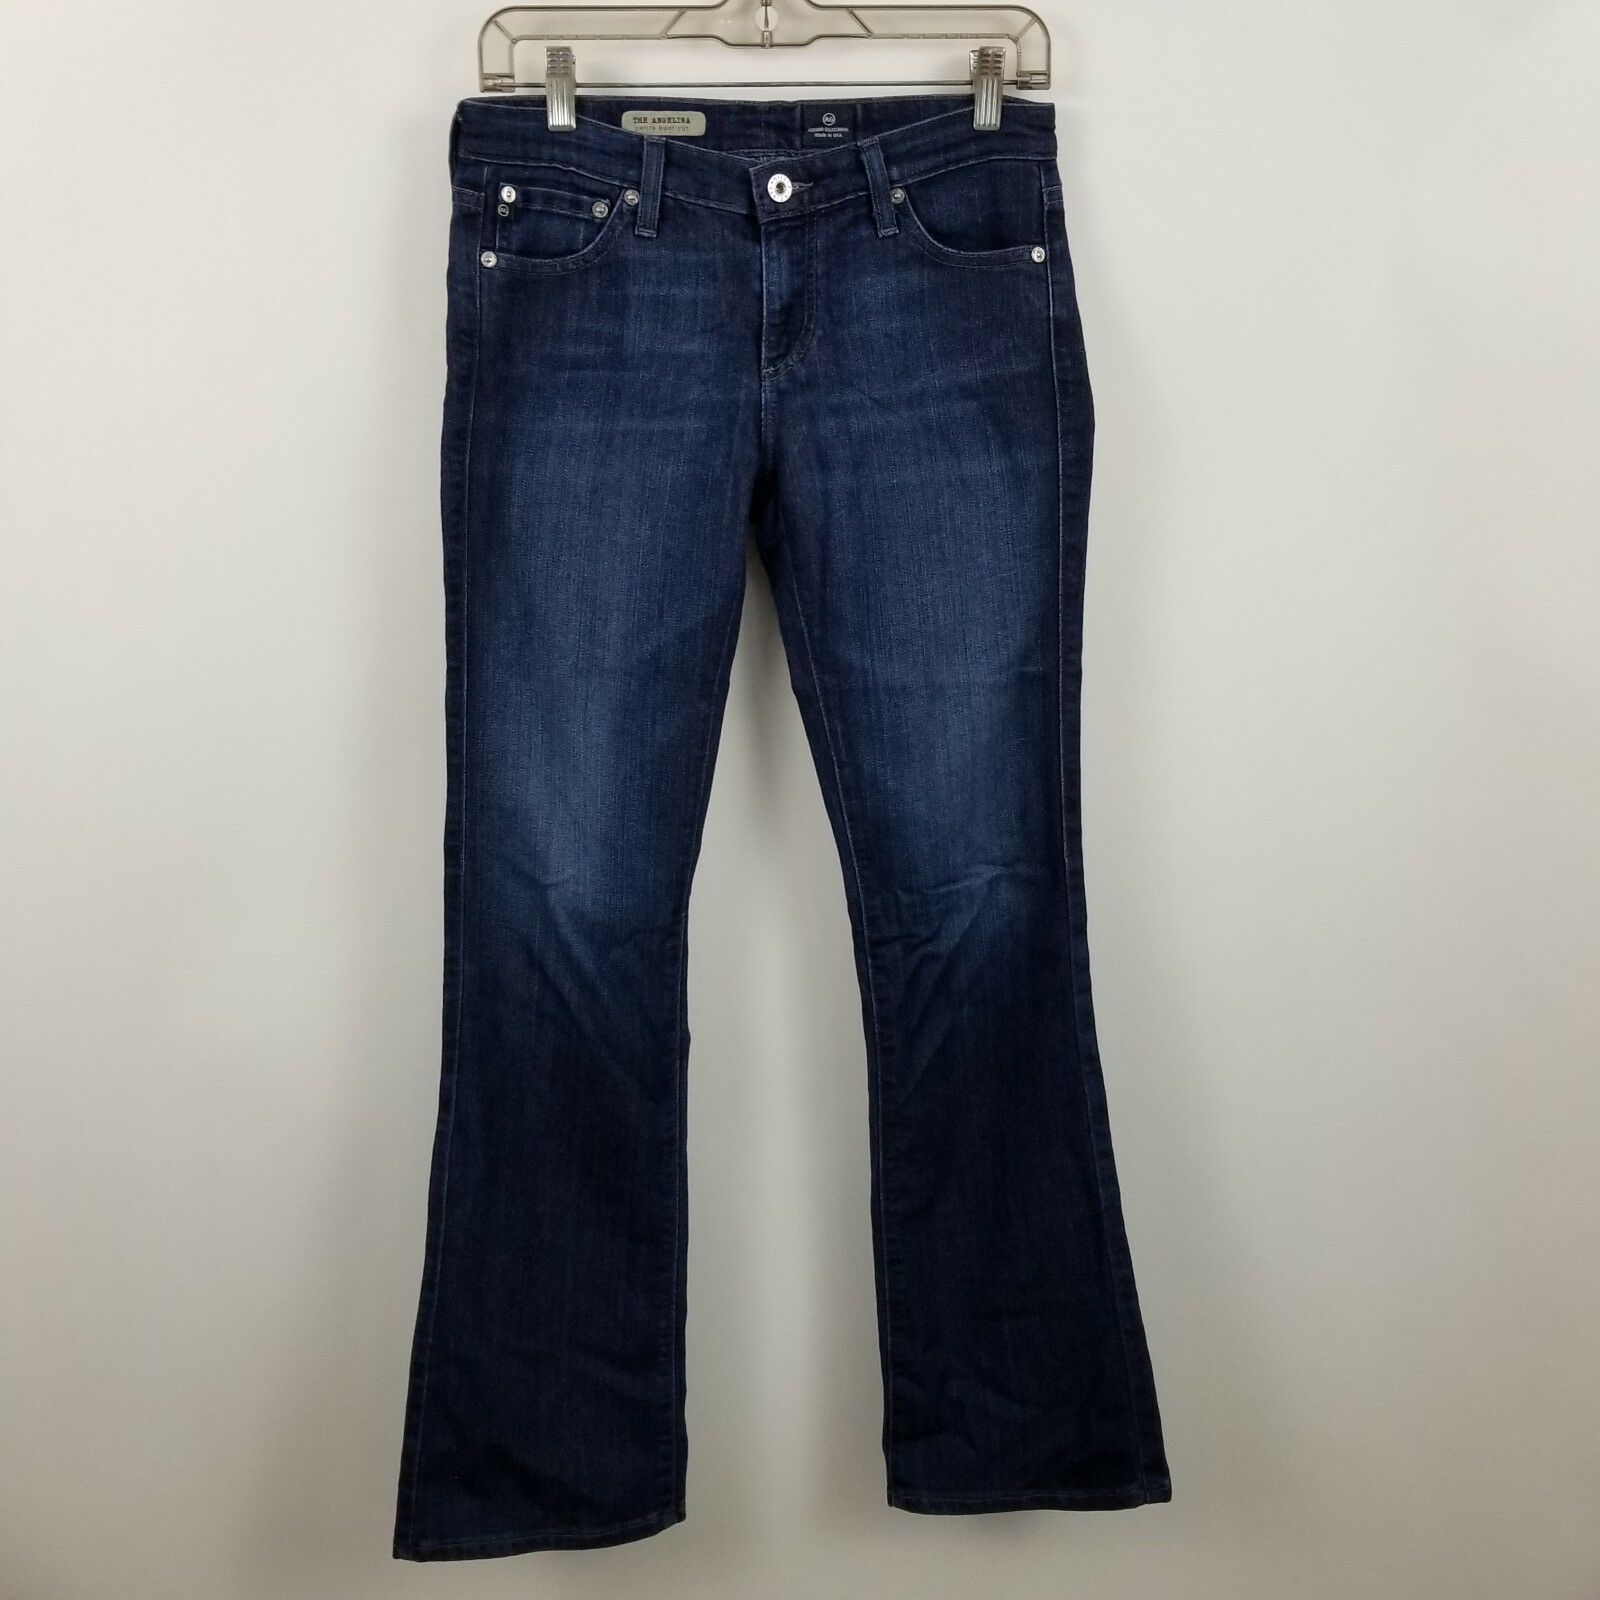 AG Adriano goldschmied The Angelina Petite Boot Cut Womens bluee Jeans Size 27r